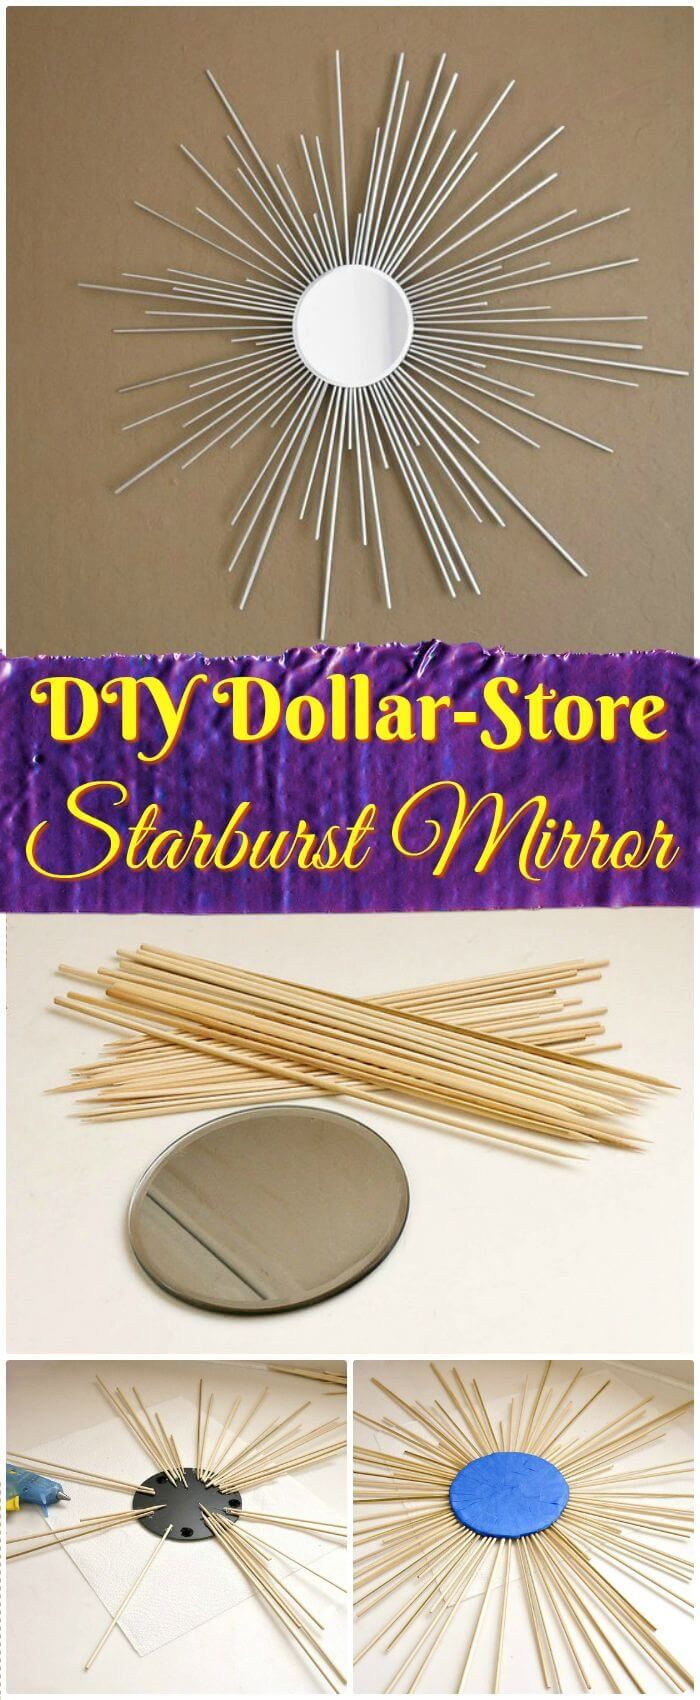 200 Cheap And Easy Dollar Store Crafts That You Can Diy 200 Cheap And Easy Dollar Store Crafts That You can DIY Diy Home and Decorations diy home decor crafts